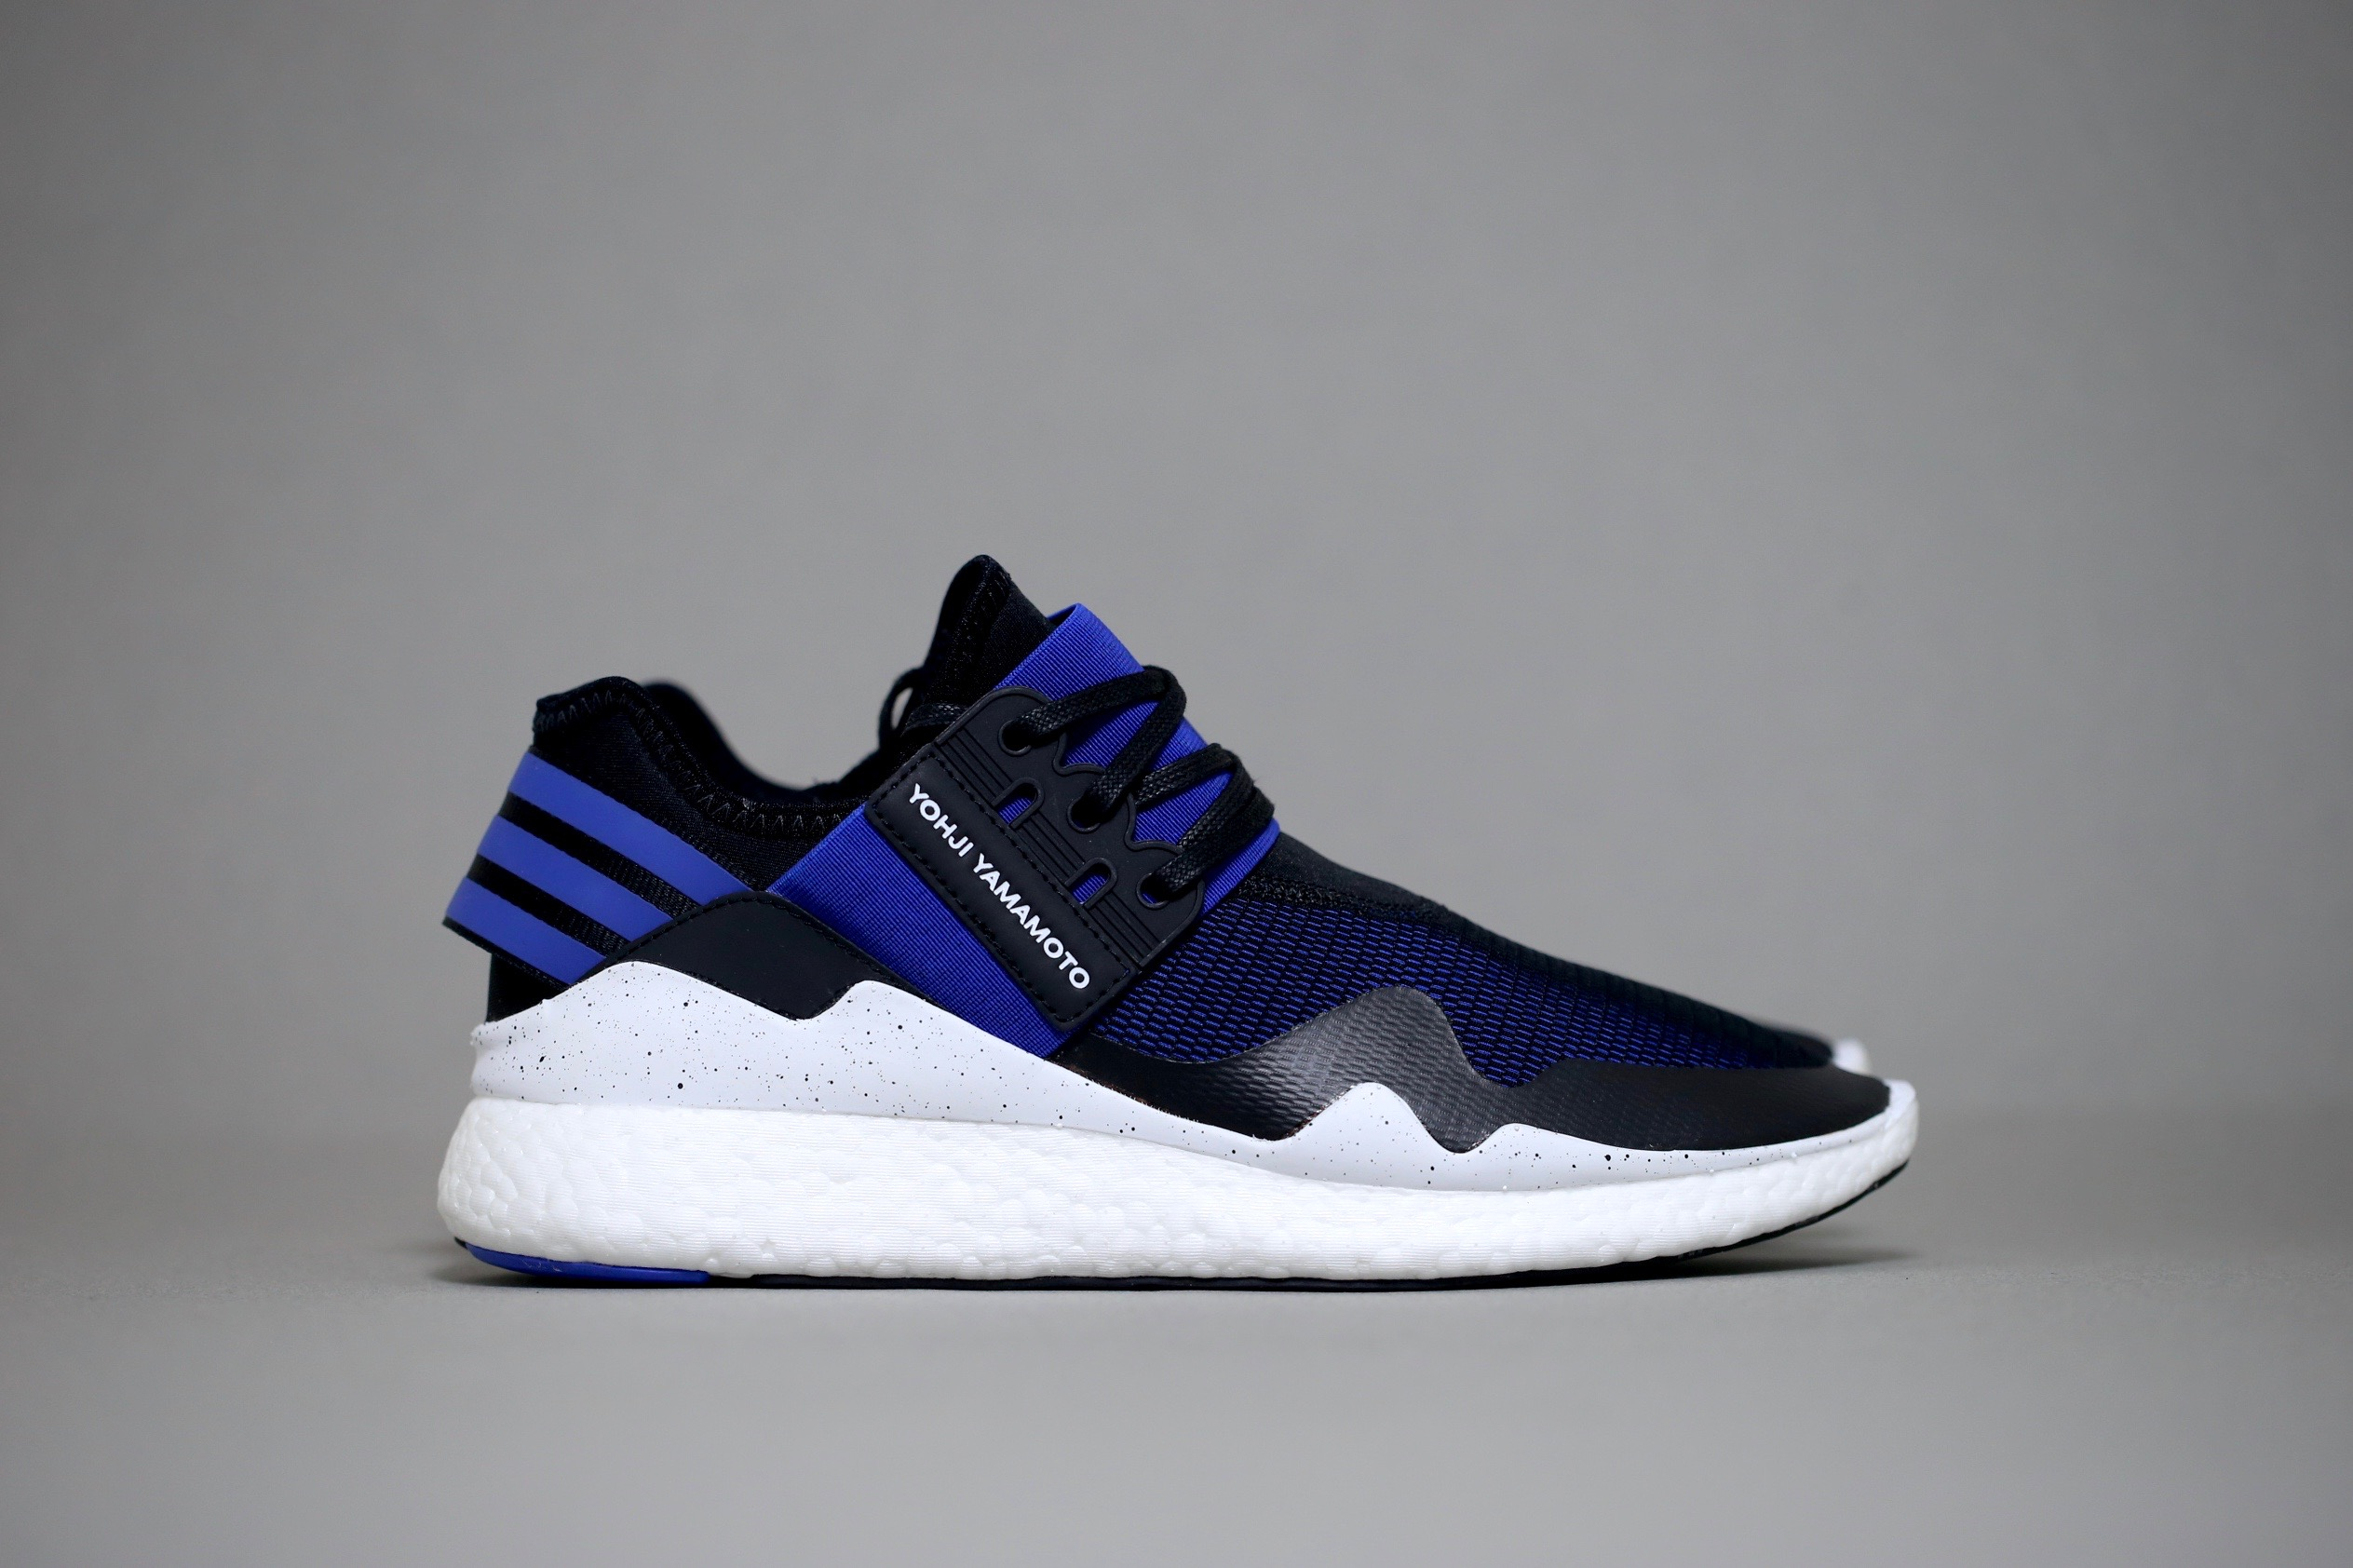 84958efd27be0 Y-3 Retro Boost – Electric Blue   Core Black   Ftwr White – STASP